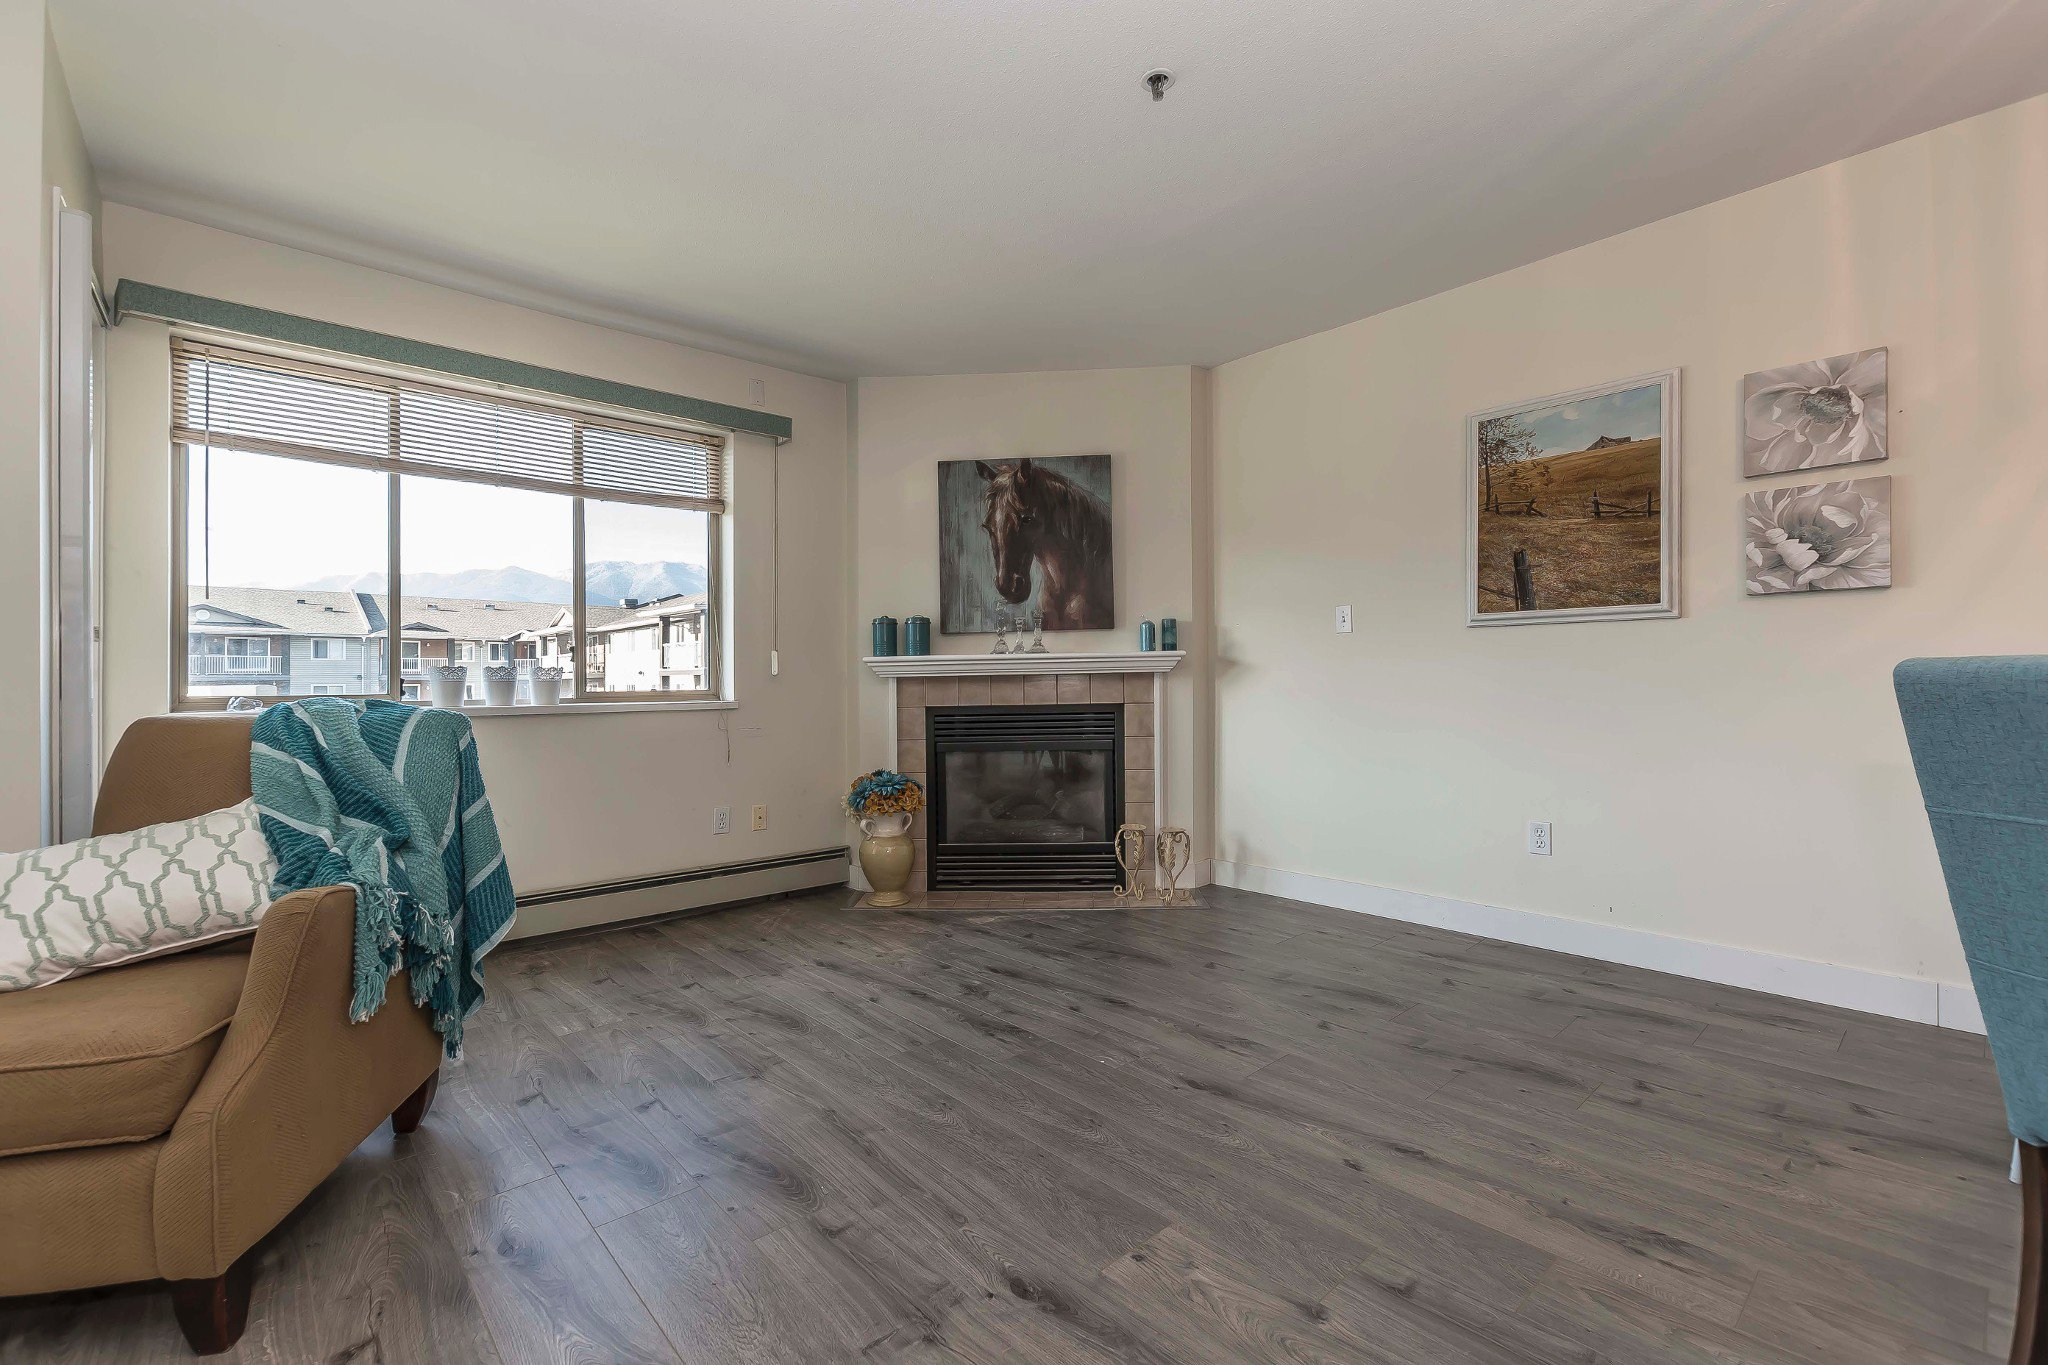 Photo 5: Photos: 305 9186 Edward Street in Chilliwack: Condo for sale : MLS®# R2218862